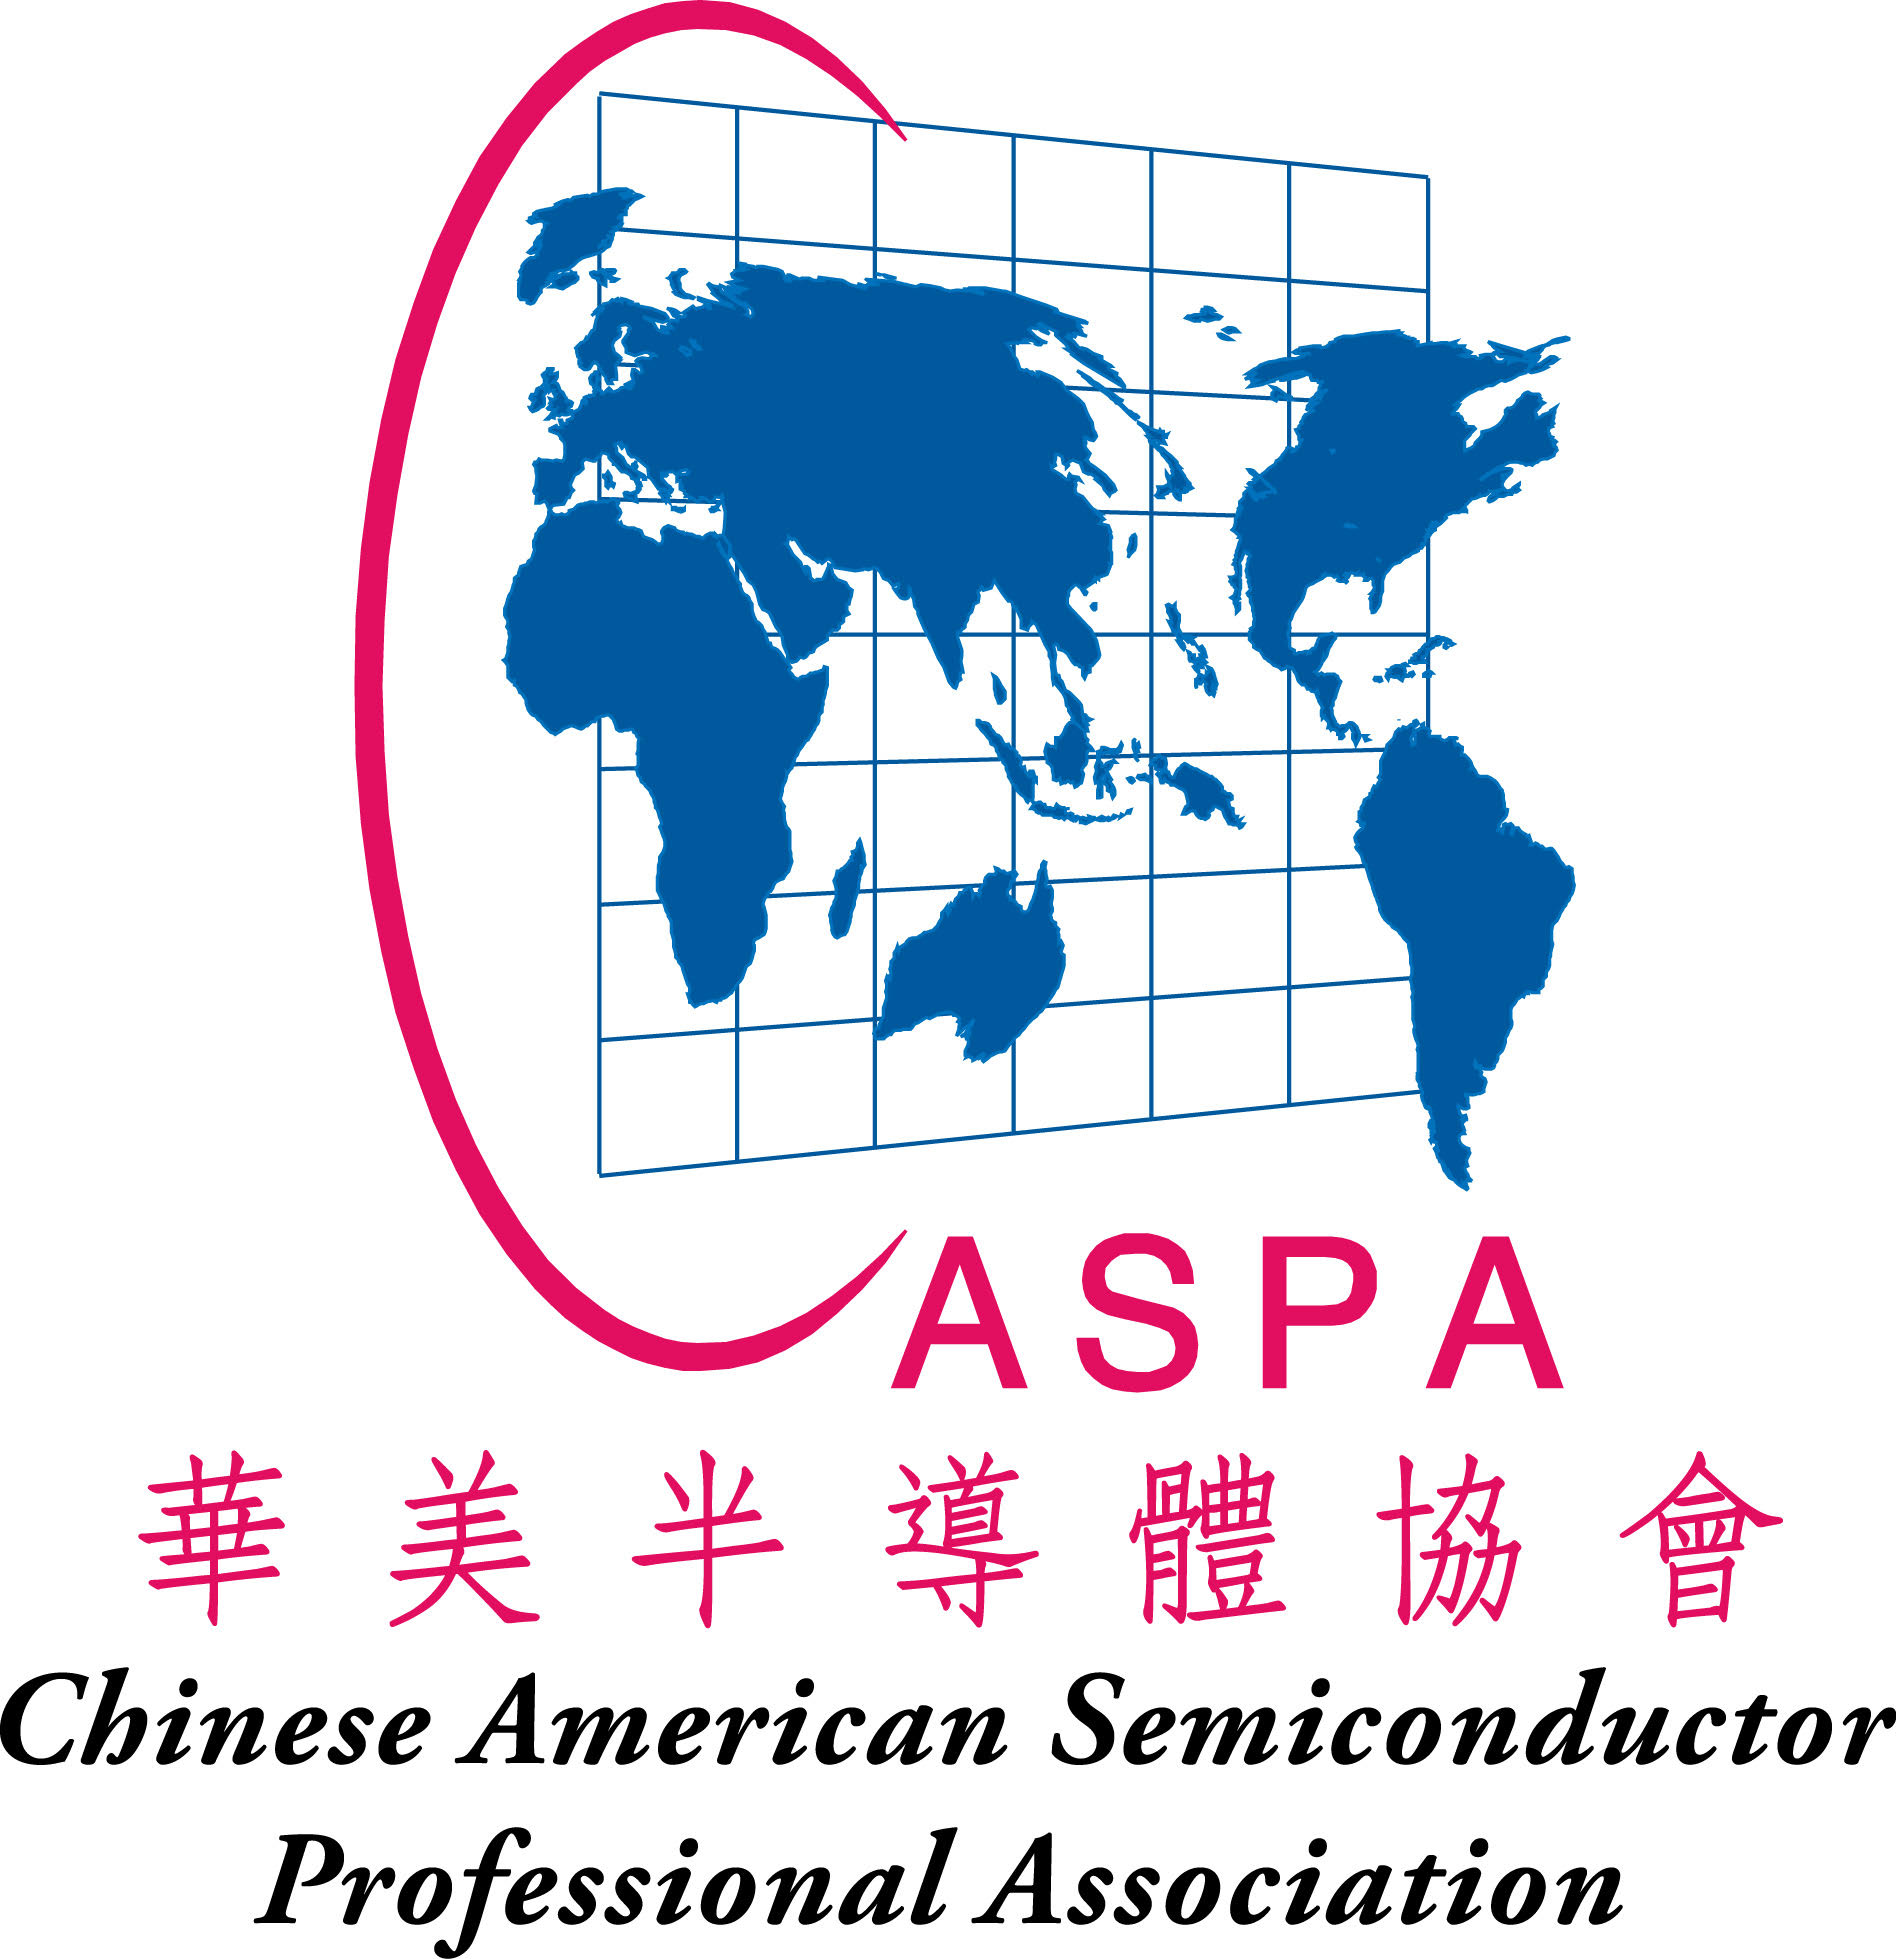 Chinese American Semiconductor Professional Association (CASPA)